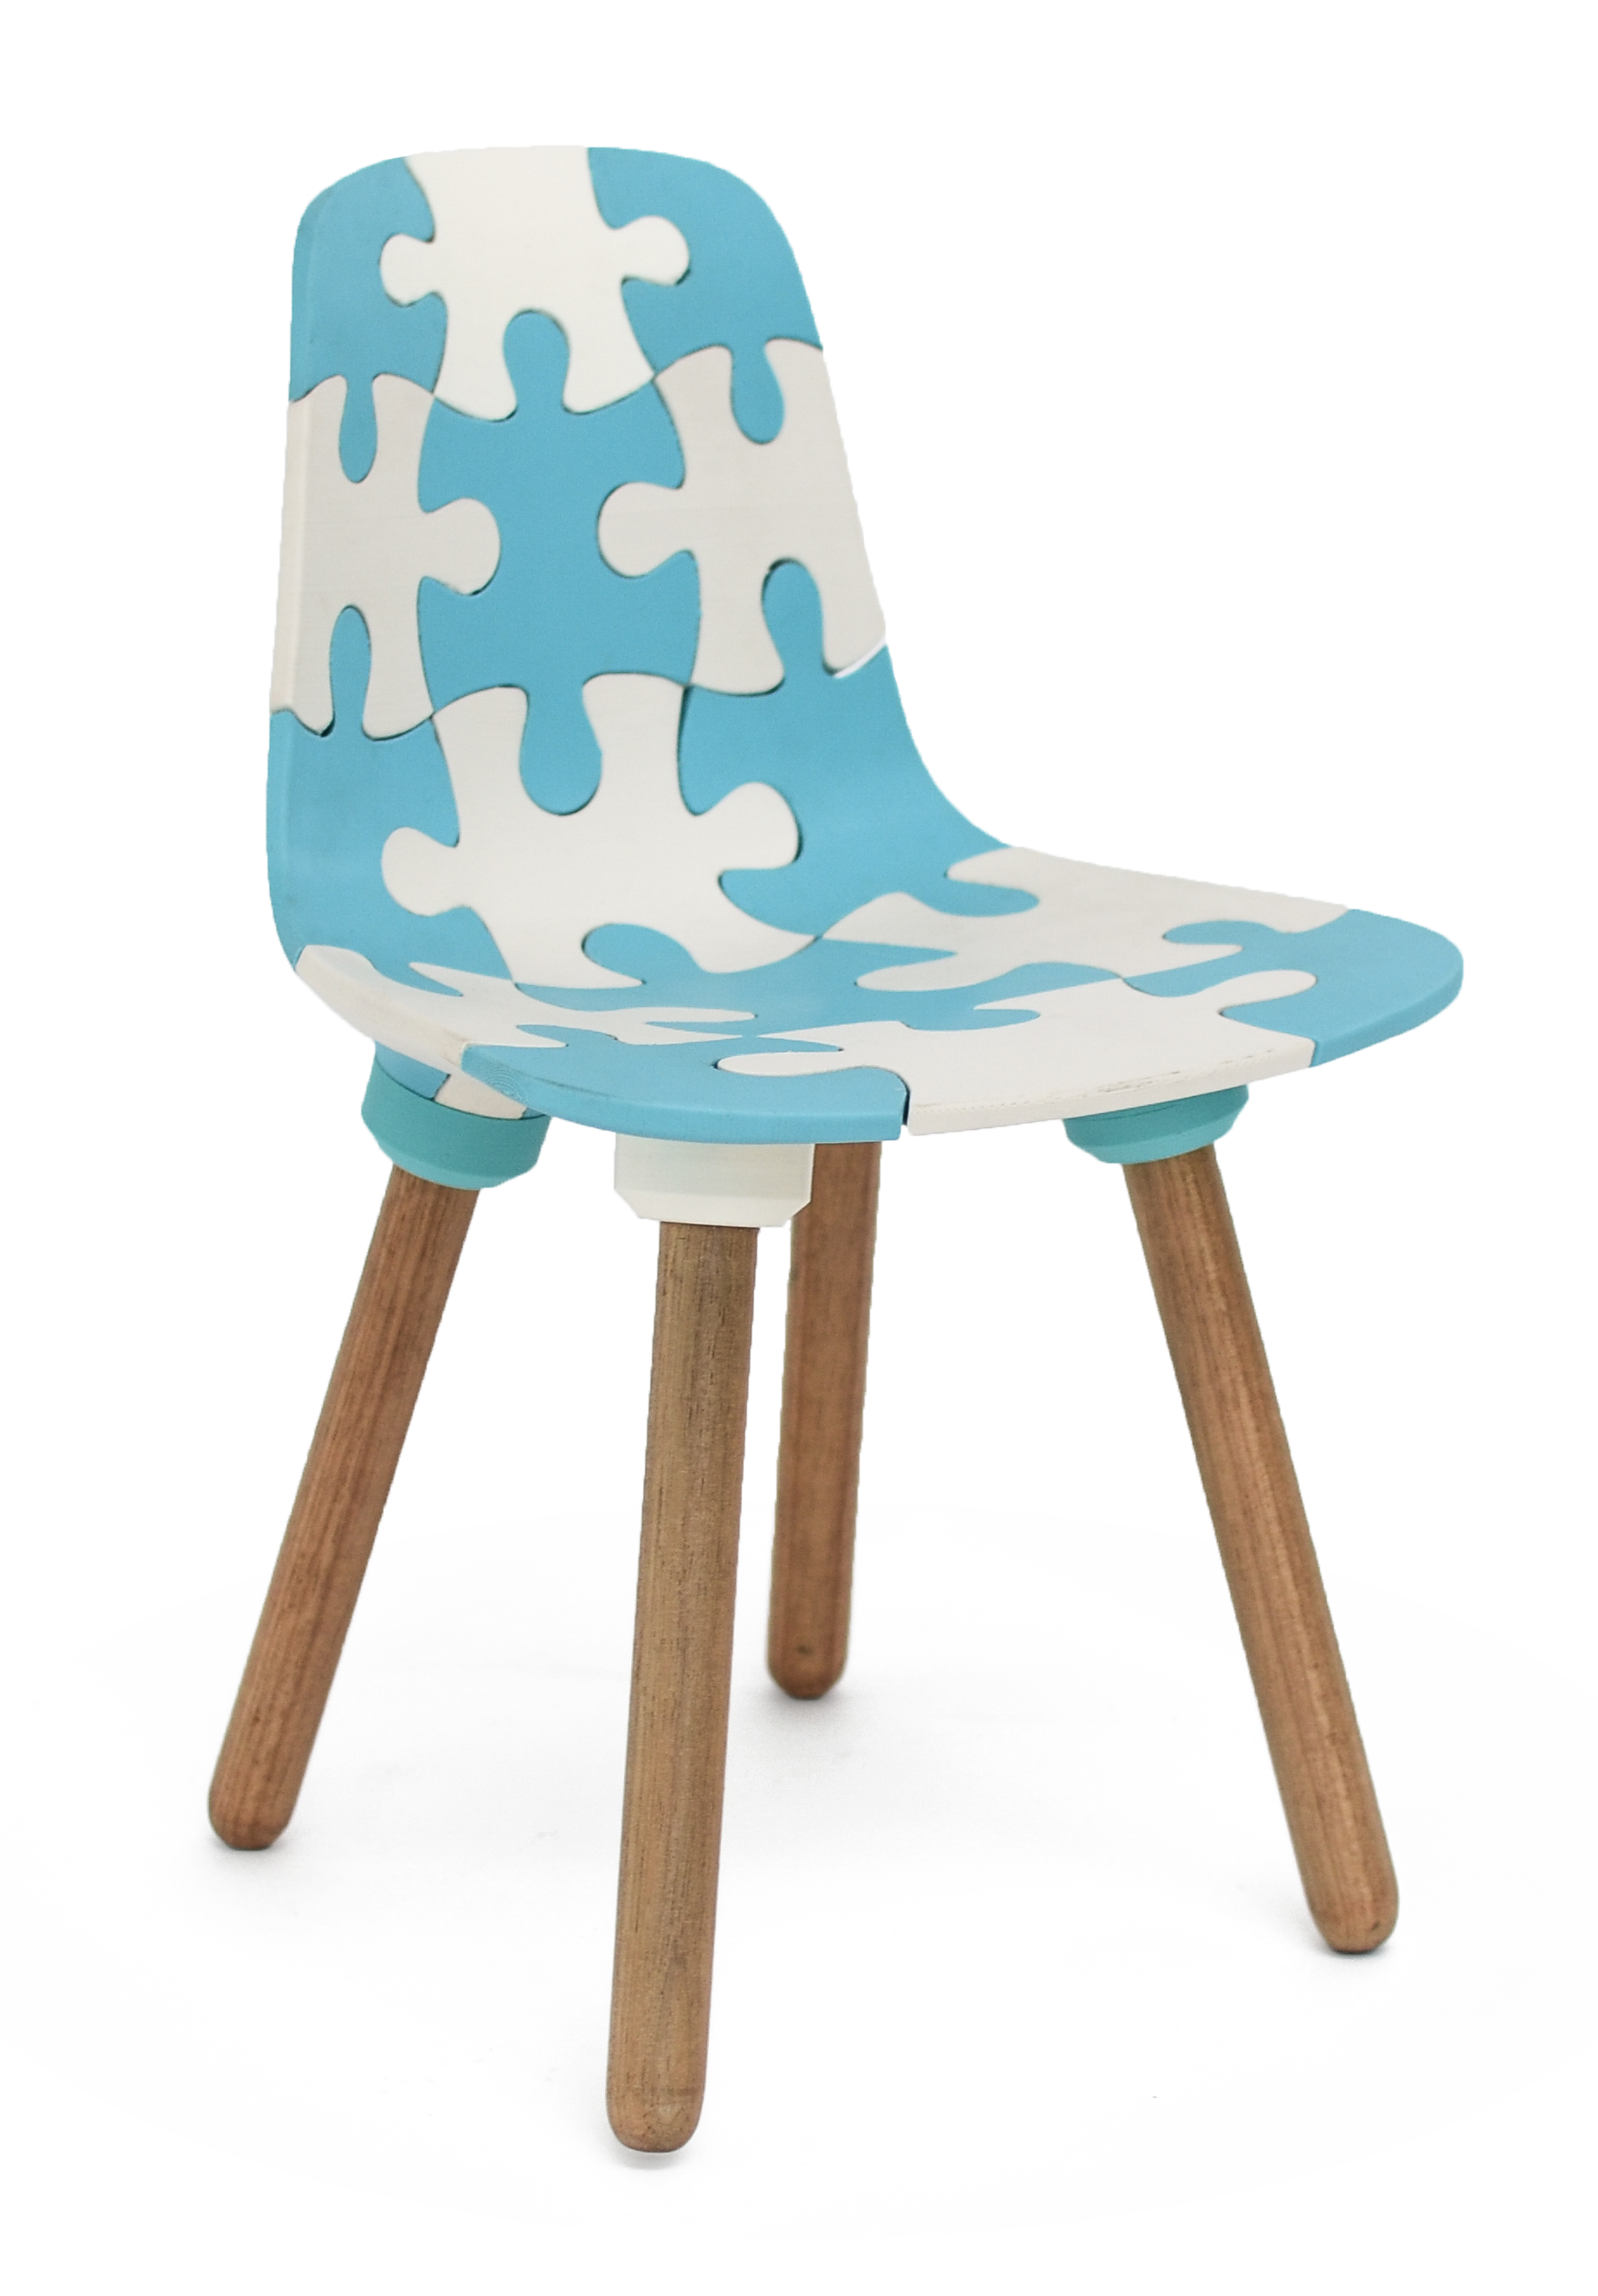 Joris Laarman Kids Puzzle Chair 3D Printed